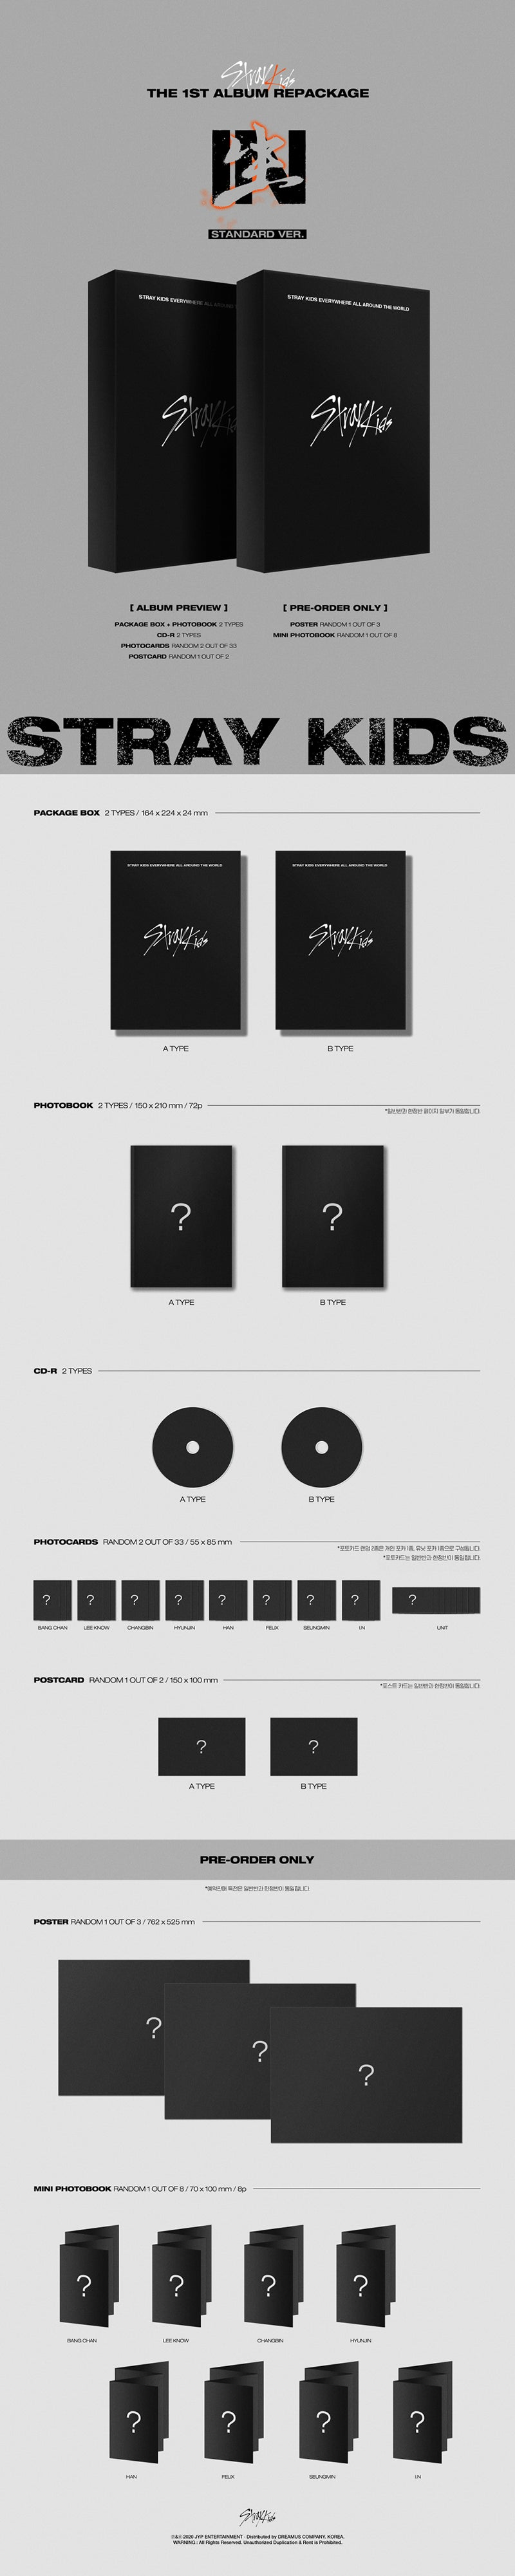 Stray Kids In Life Standard Edition Version A and B SOKOLLAB UK